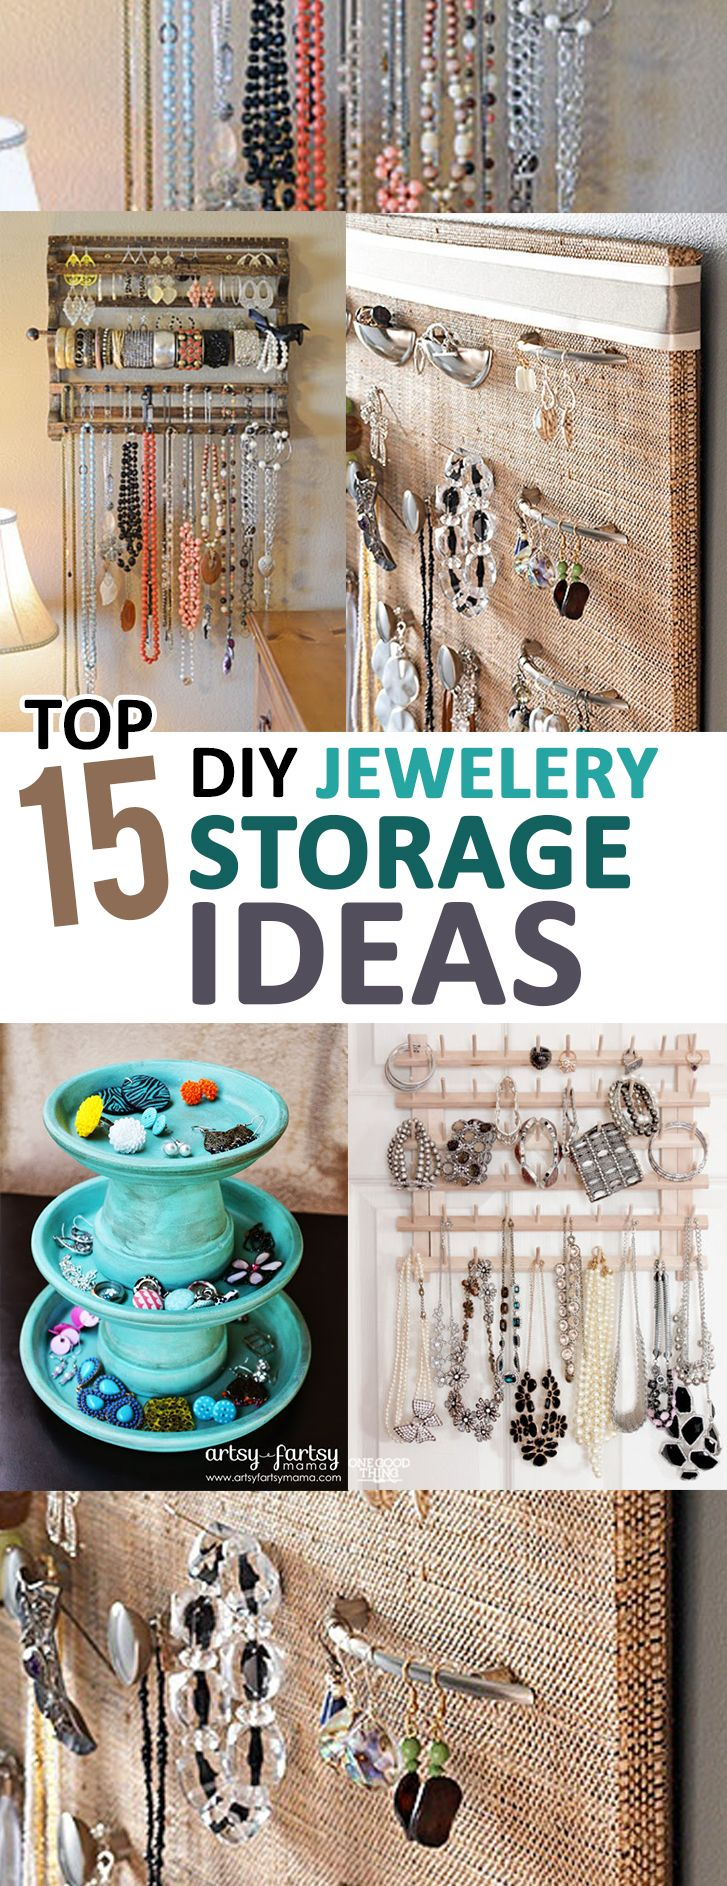 Top 15 DIY Jewelry Storage Ideas DIY storage Storage ideas and